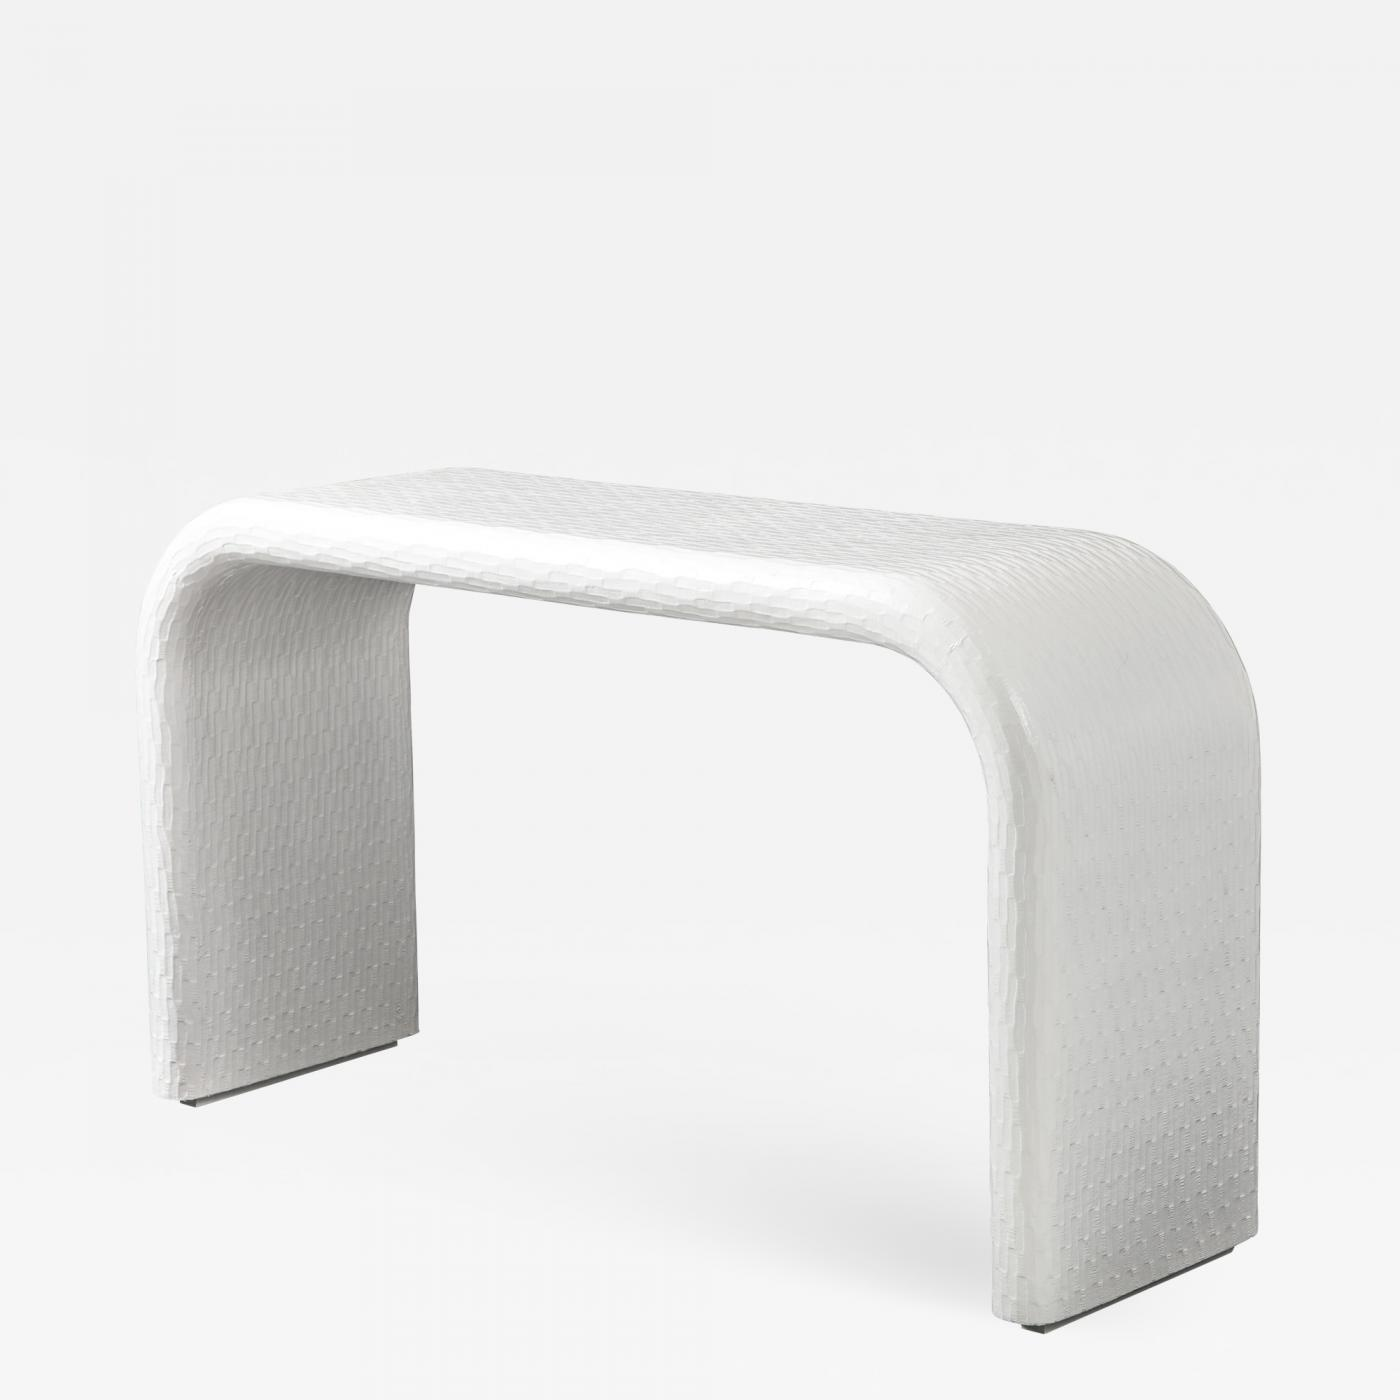 Mid Century Modern Console Table. Waterfall line.